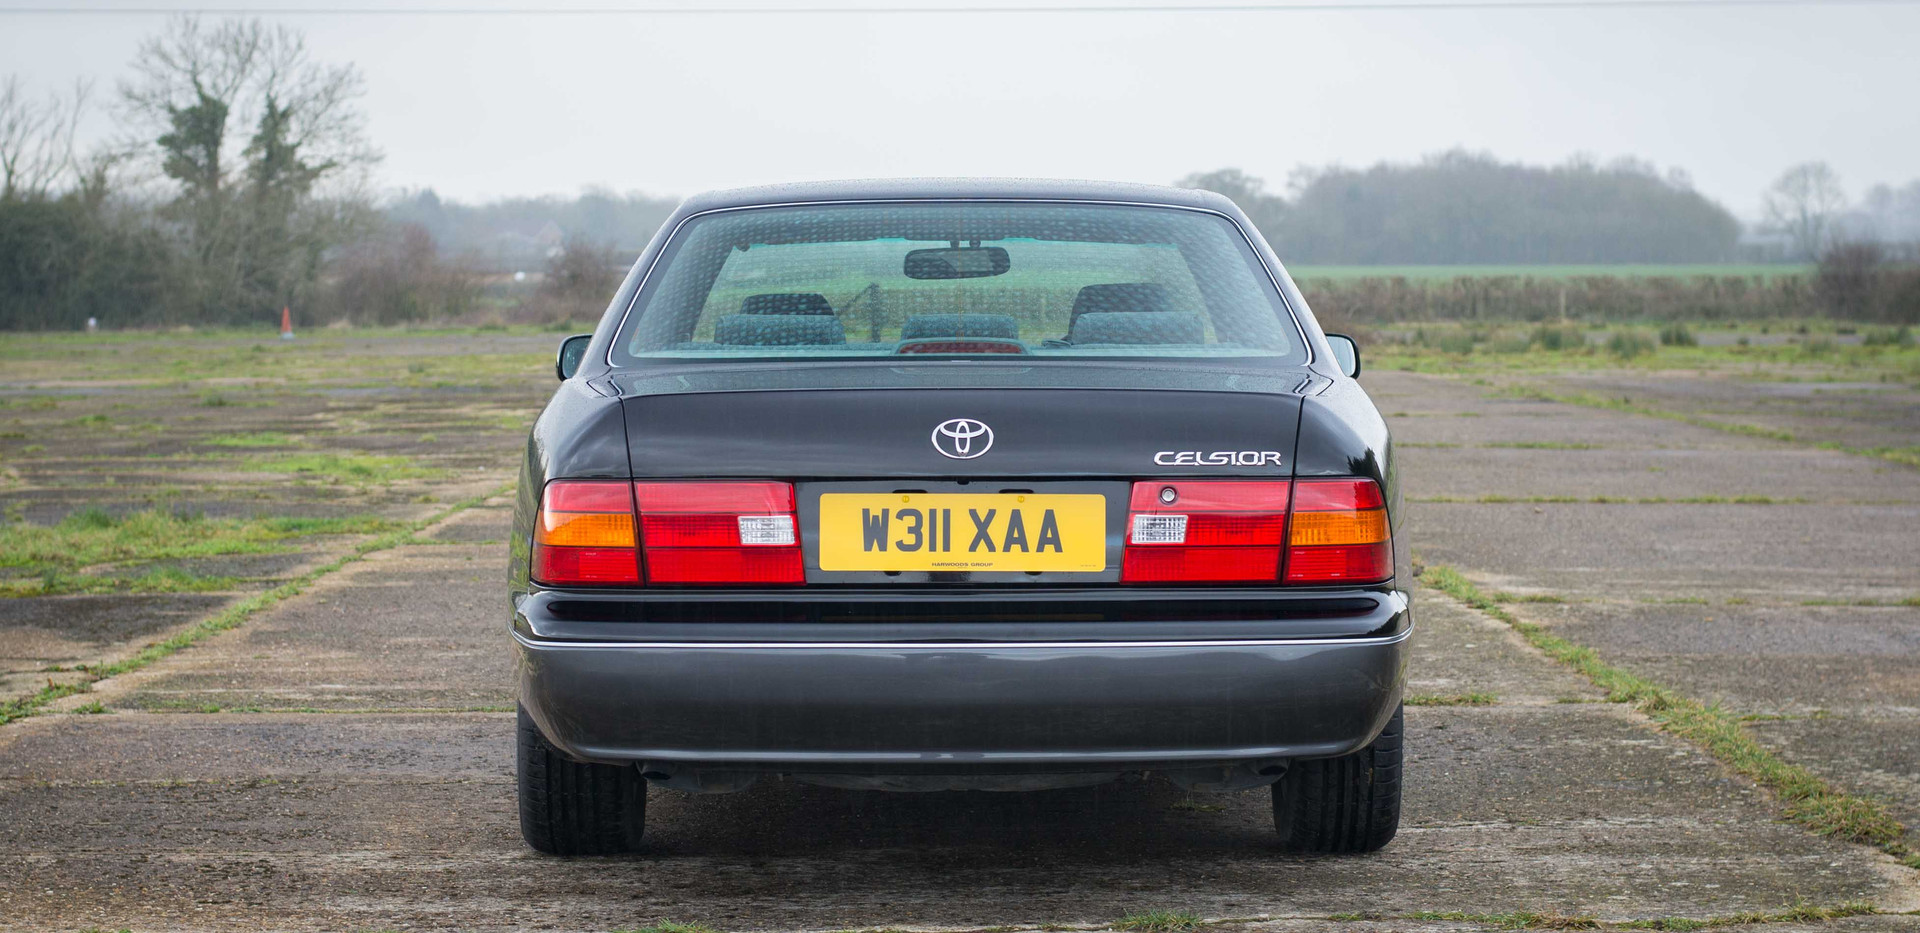 Toyota Celsior For Sale UK London  (7 of